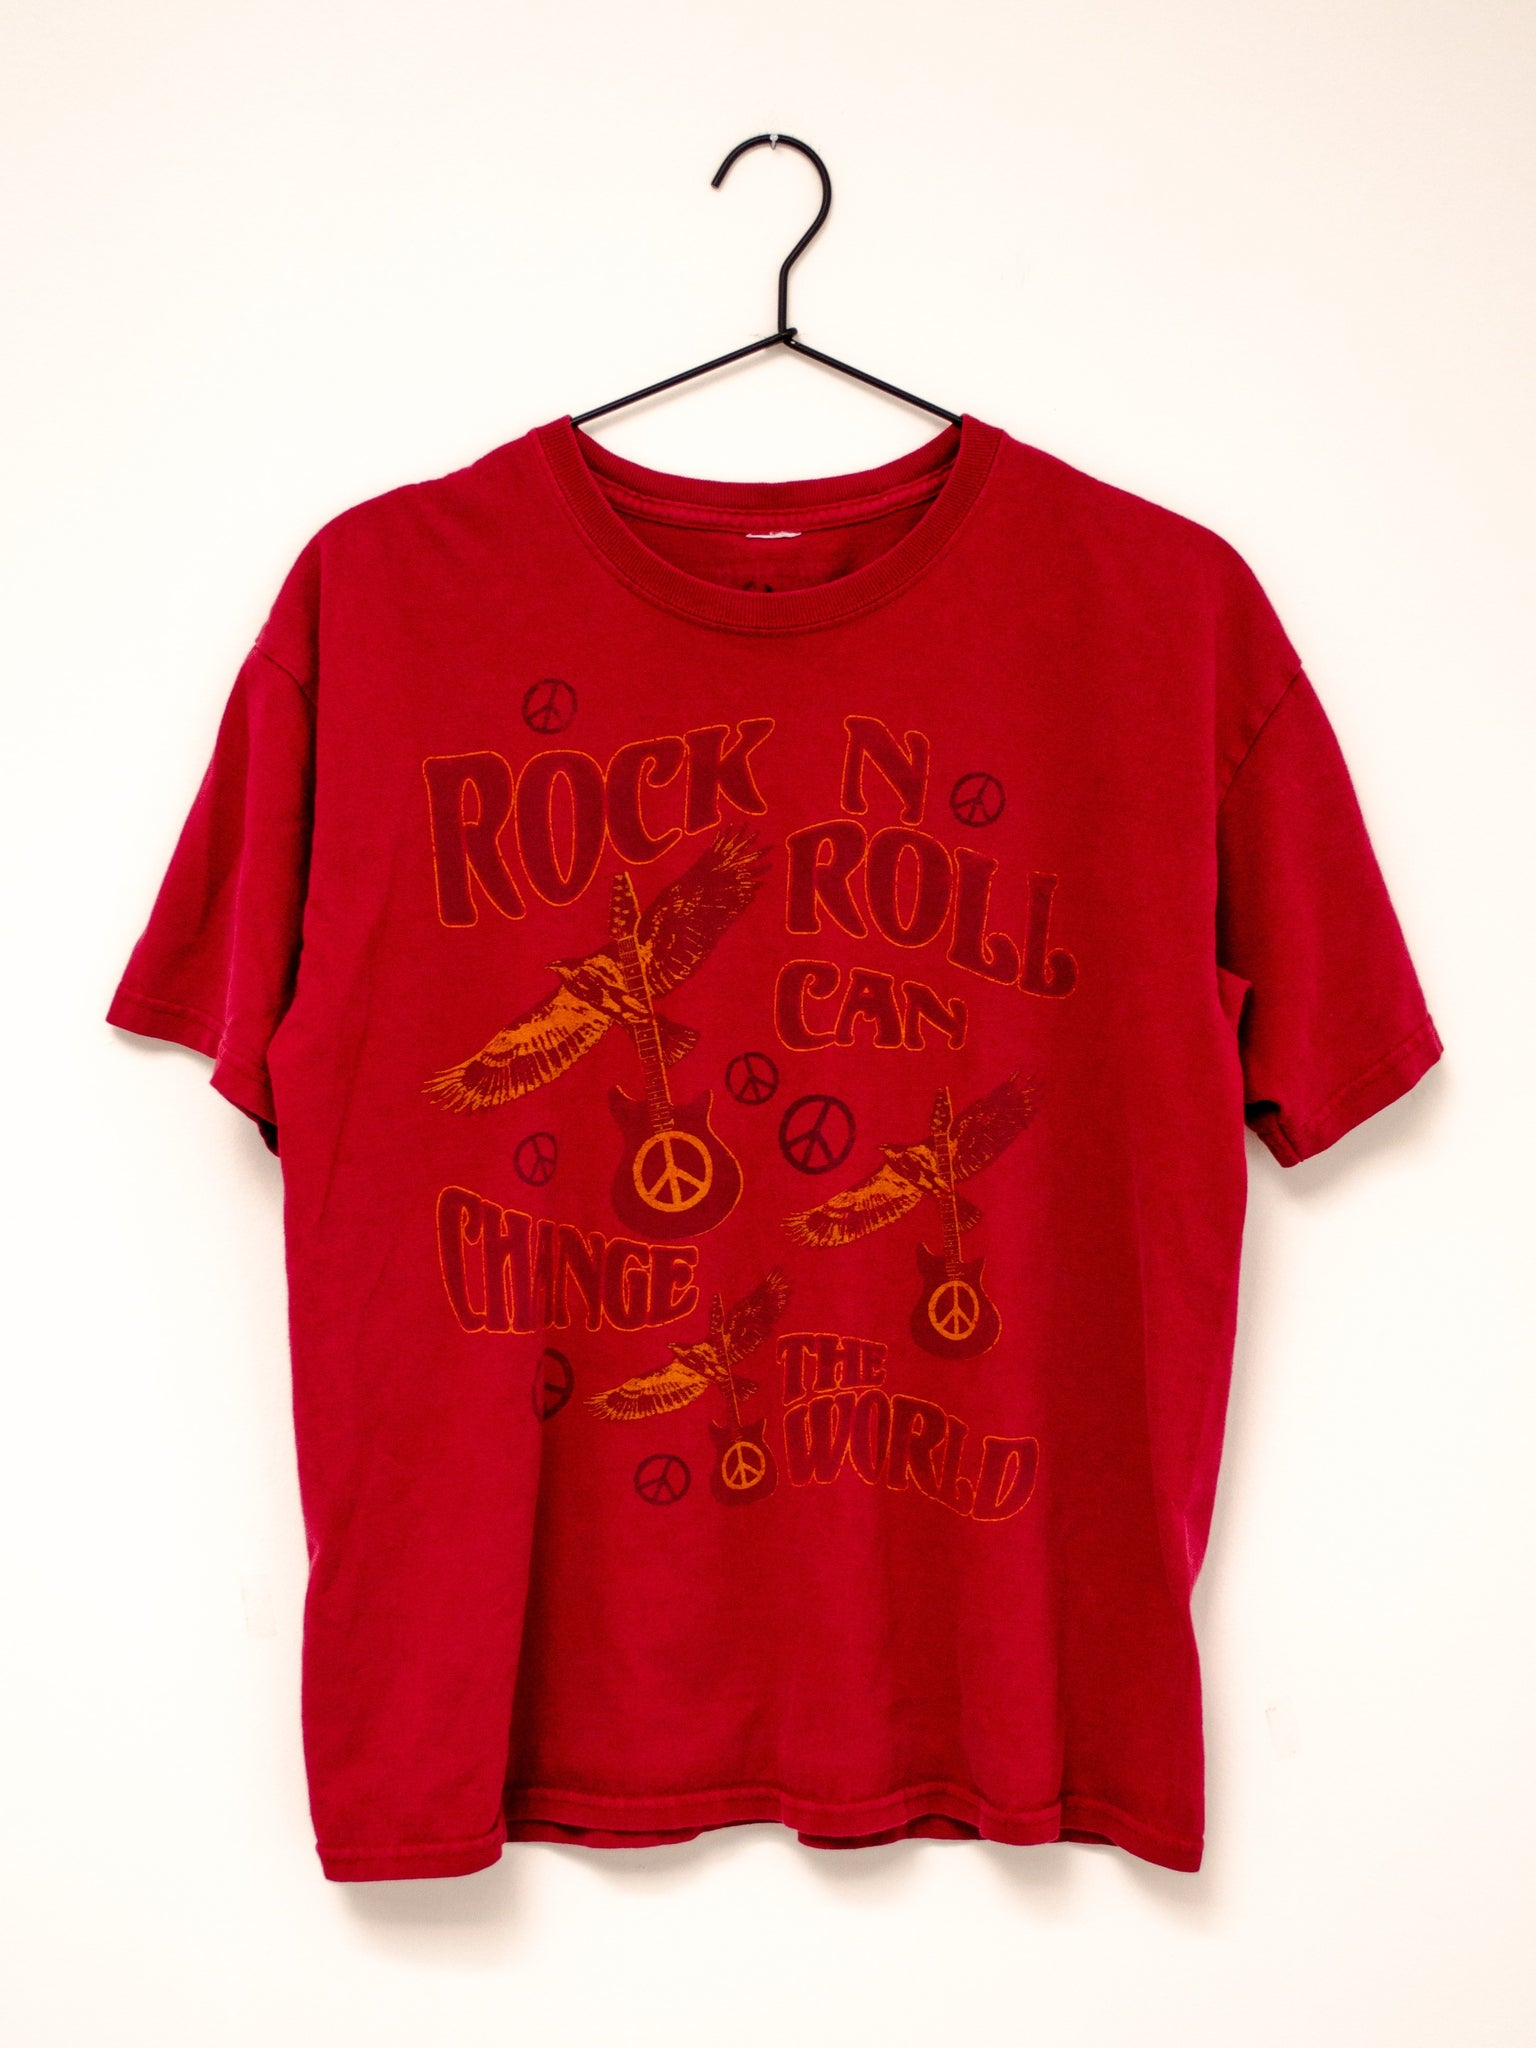 Vintage Red Rock & Roll Tee / S-L